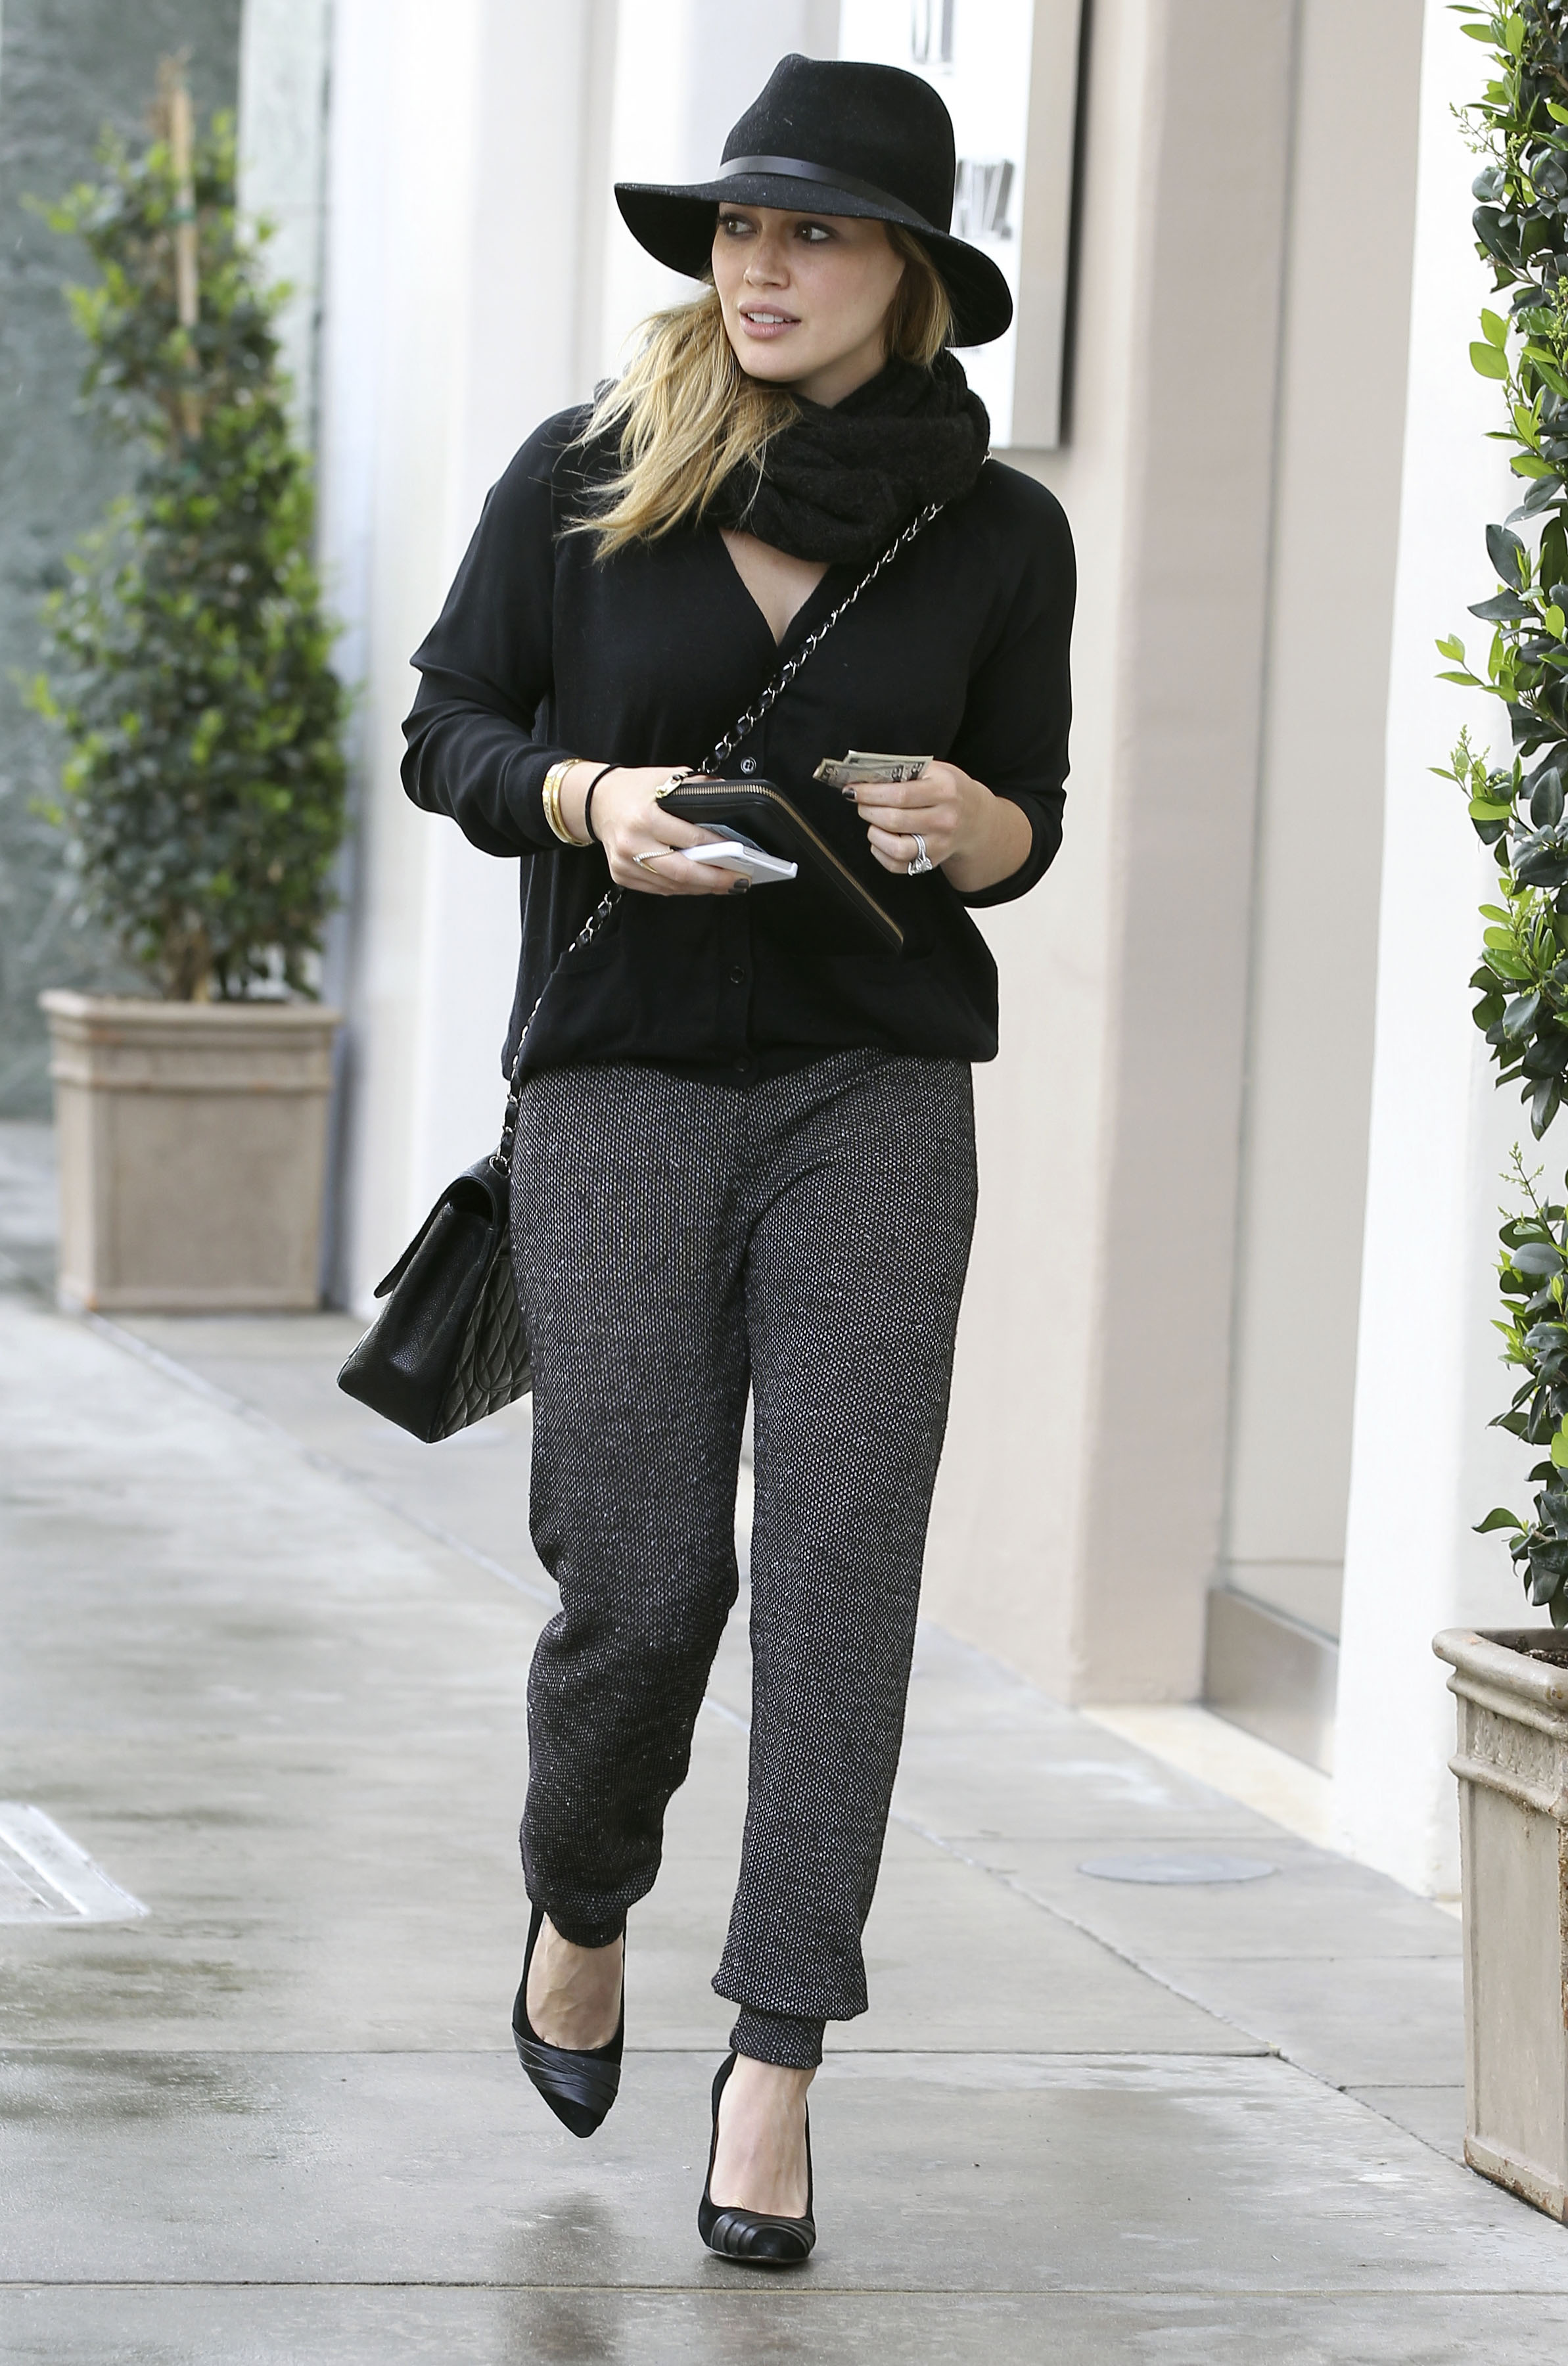 Get the Look: Hilary Duff's Street-Chic Track Pants